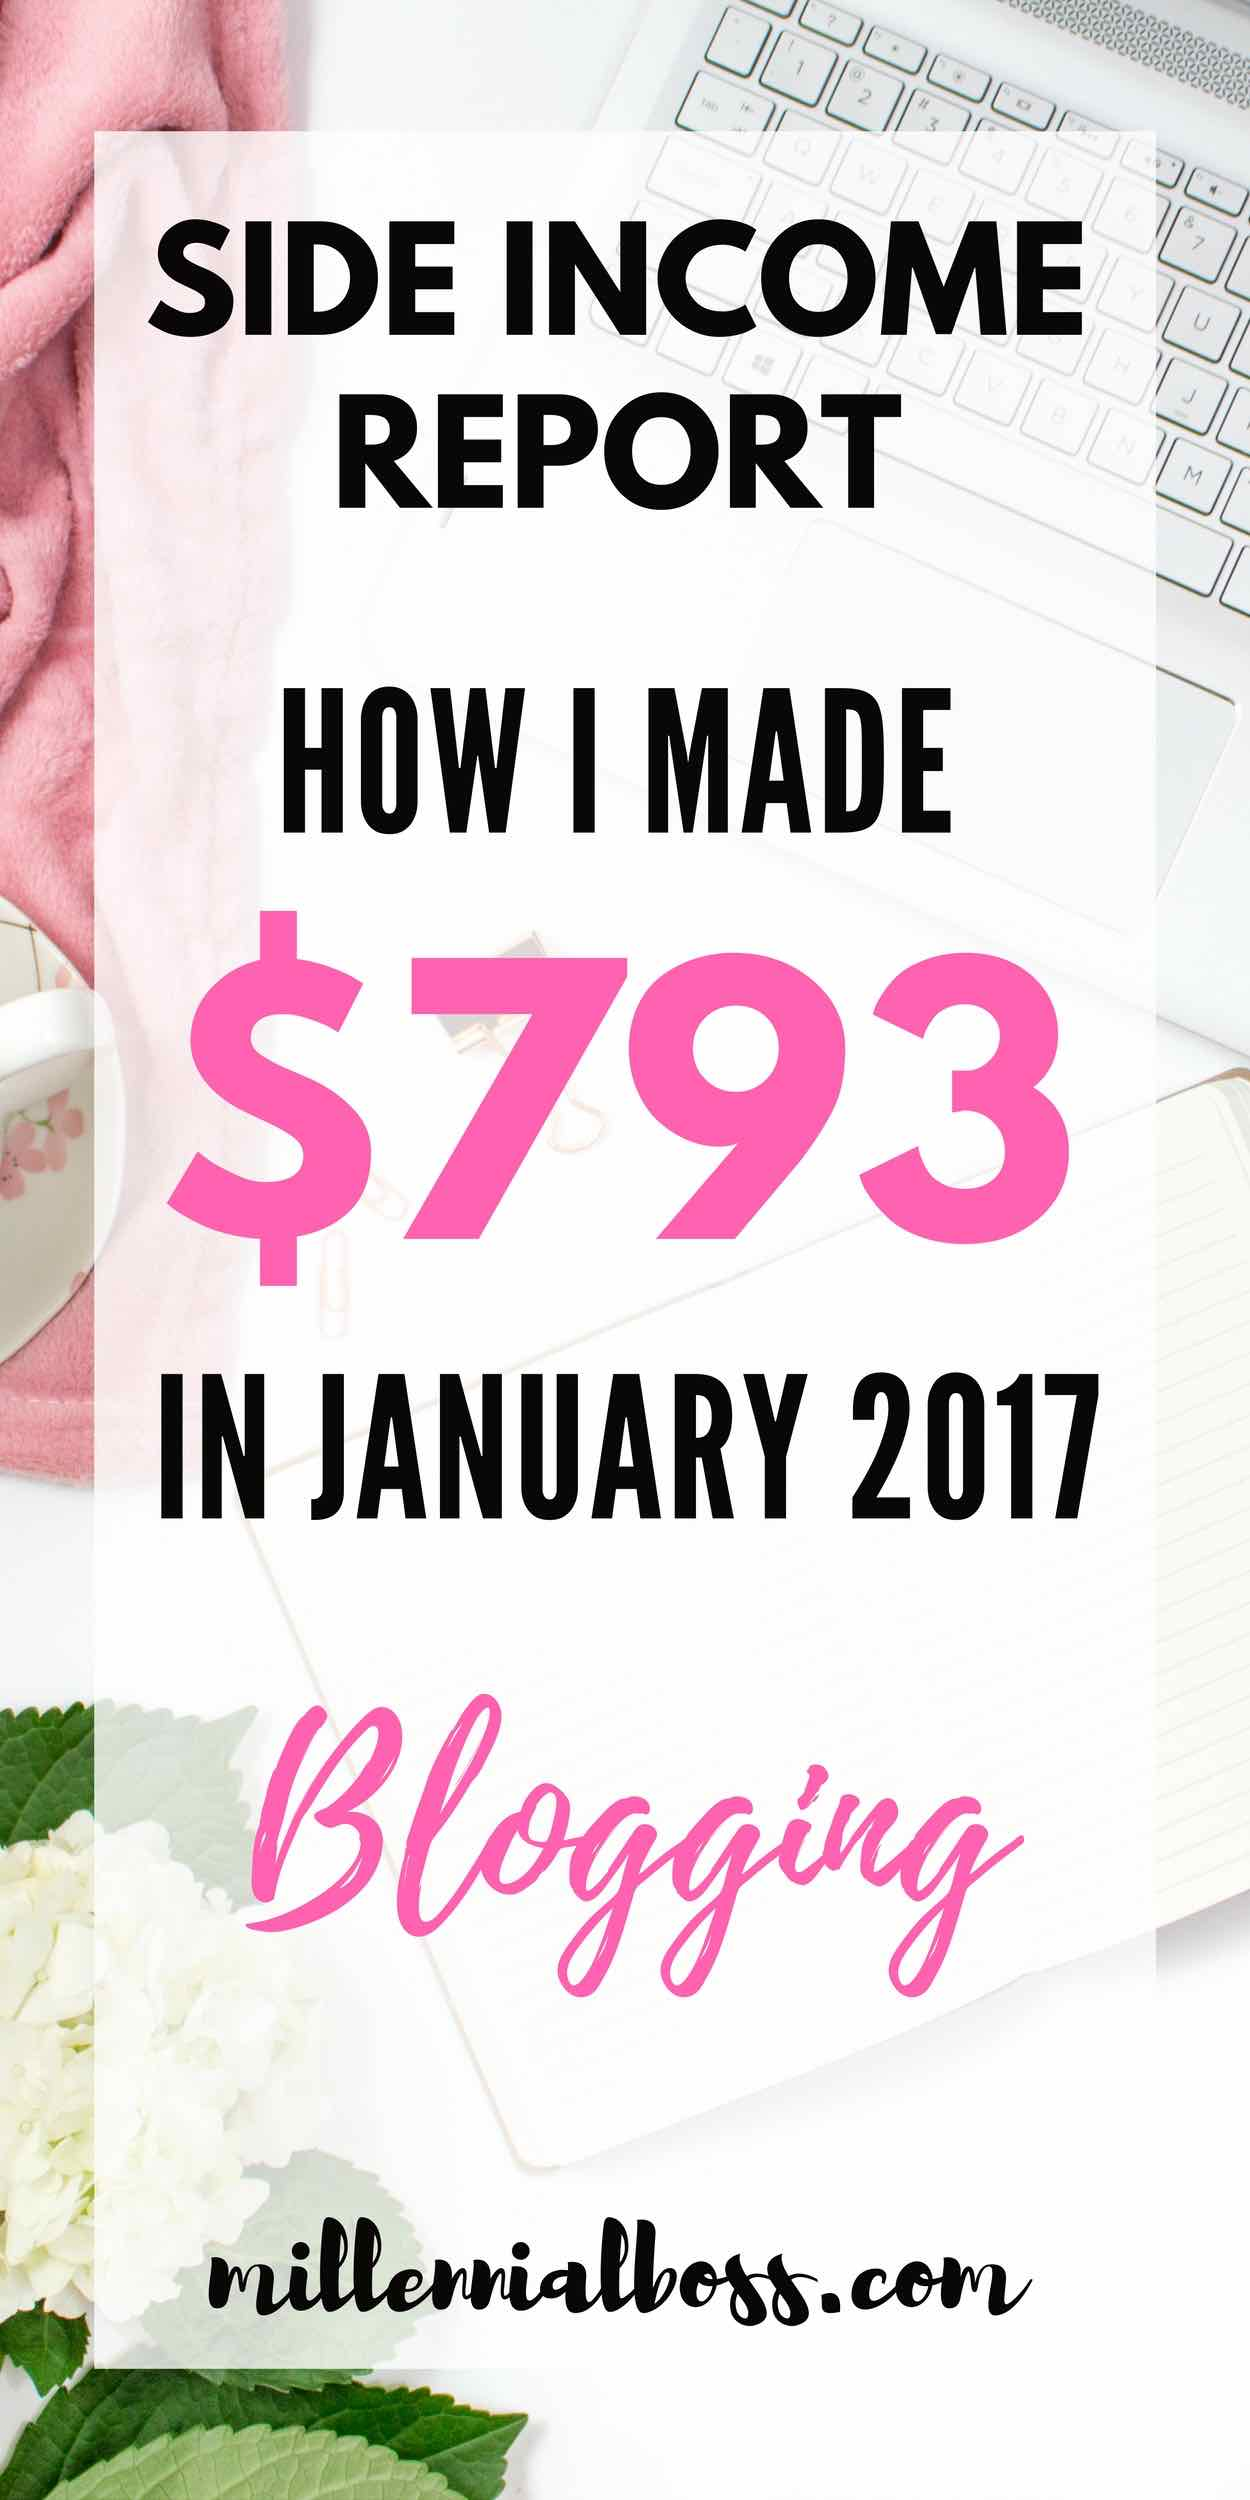 Blogging income report | Make money on blog | Side income | Side hustle ideas